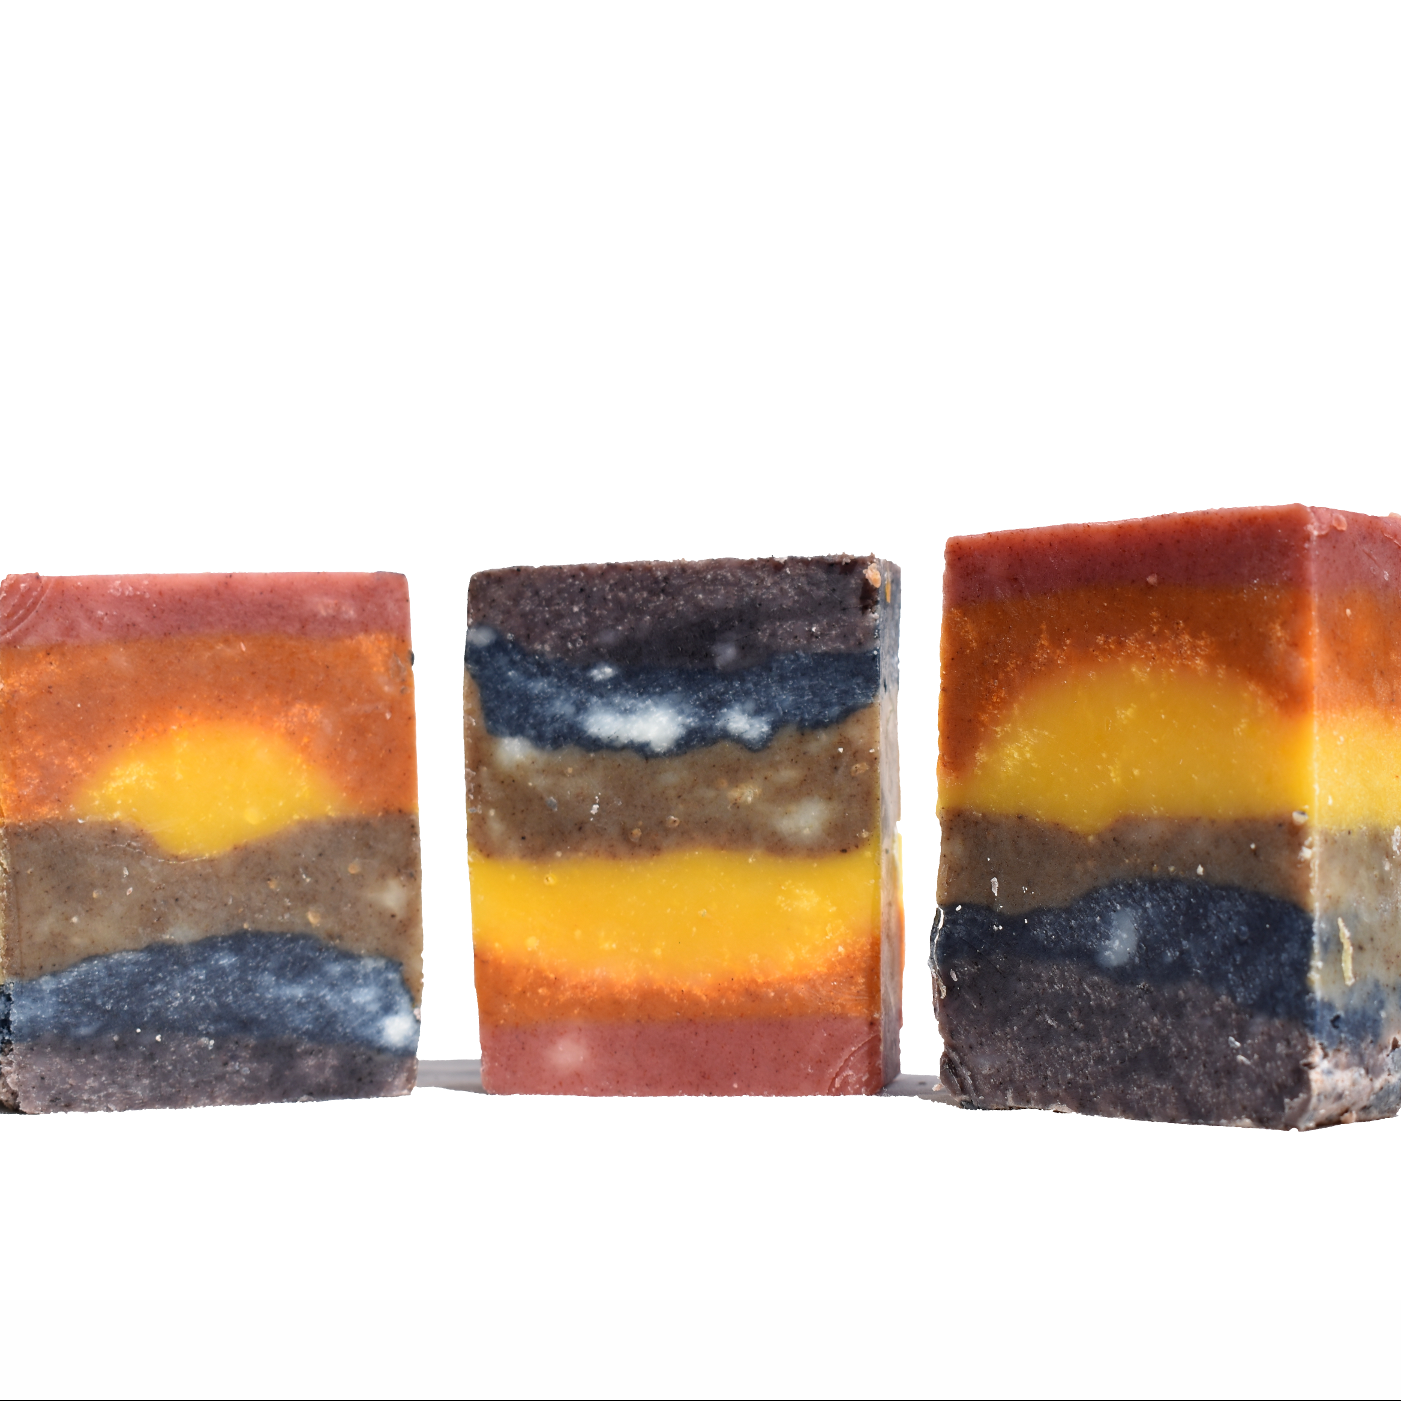 Three rectangular bars of soap are placed on a white background. The soaps are striped and multicoloured.